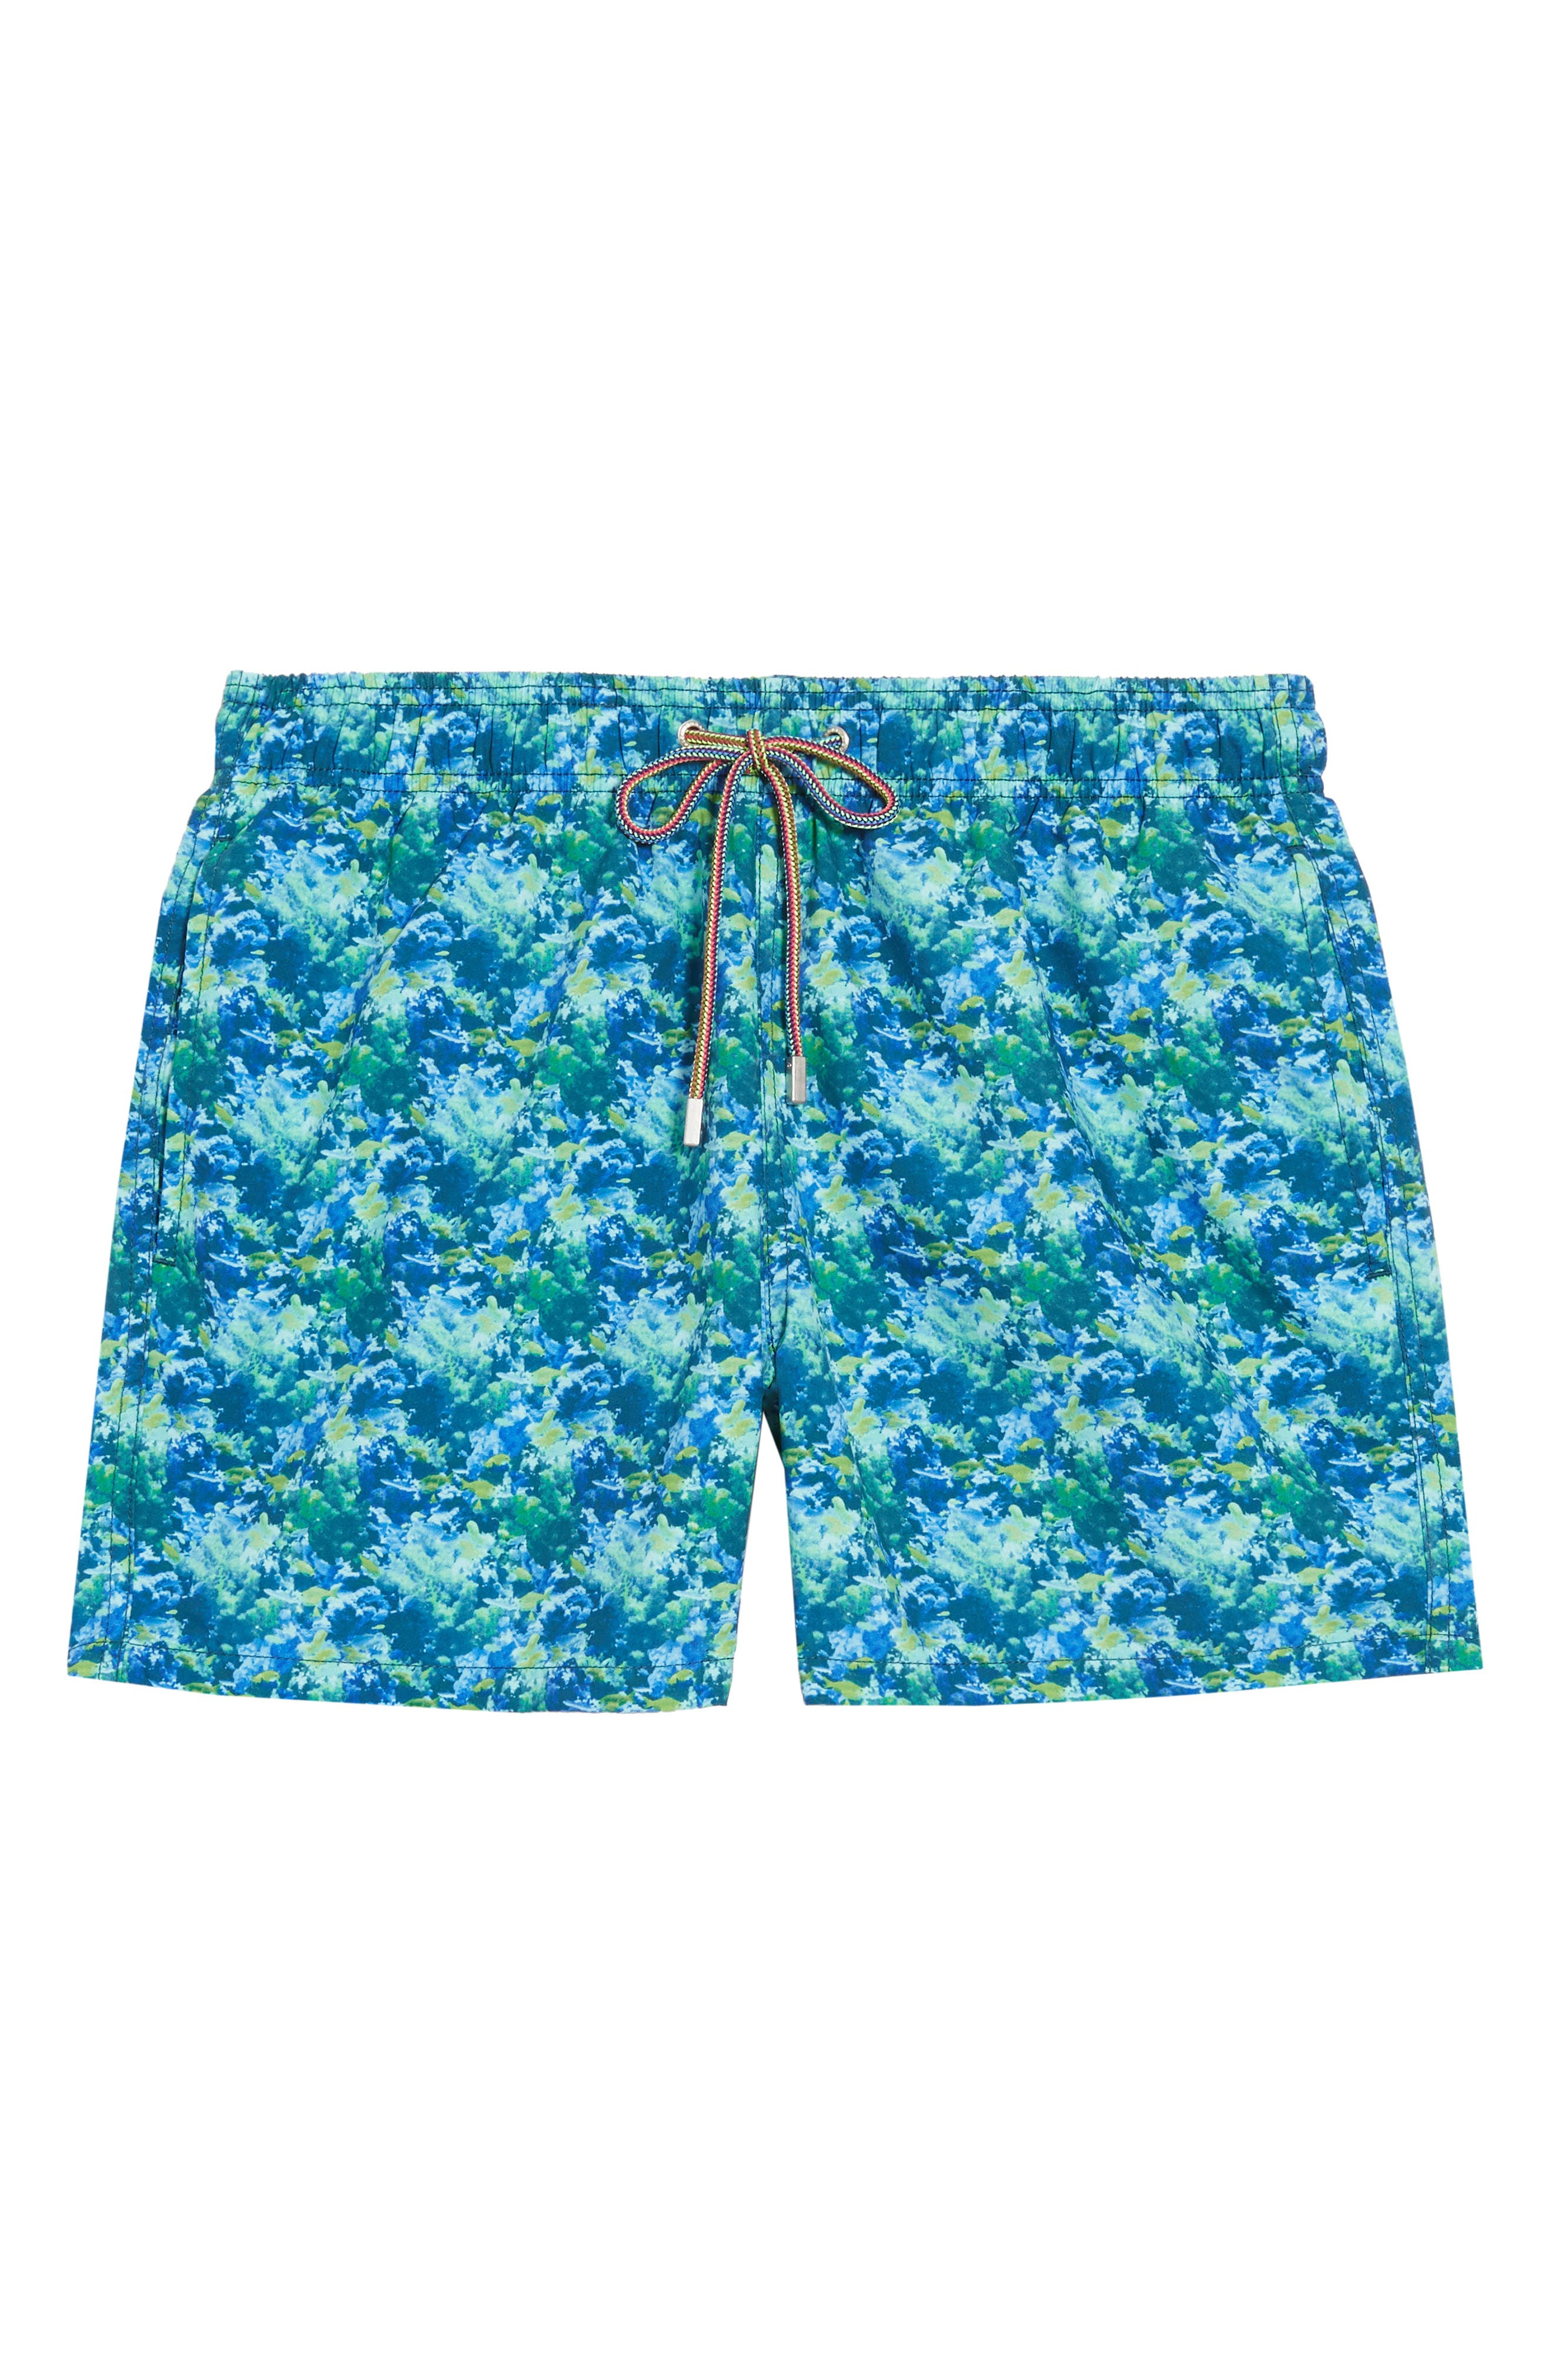 Get your own view of the ocean floor with these softly peached, quick-drying swim trunks fitted with a breathable mesh lining for support. Drainage grommets at the back help prevent ballooning when you dive into the water. Style Name: Bugatchi Print Swim Trunks. Style Number: 6039762. Available in stores.